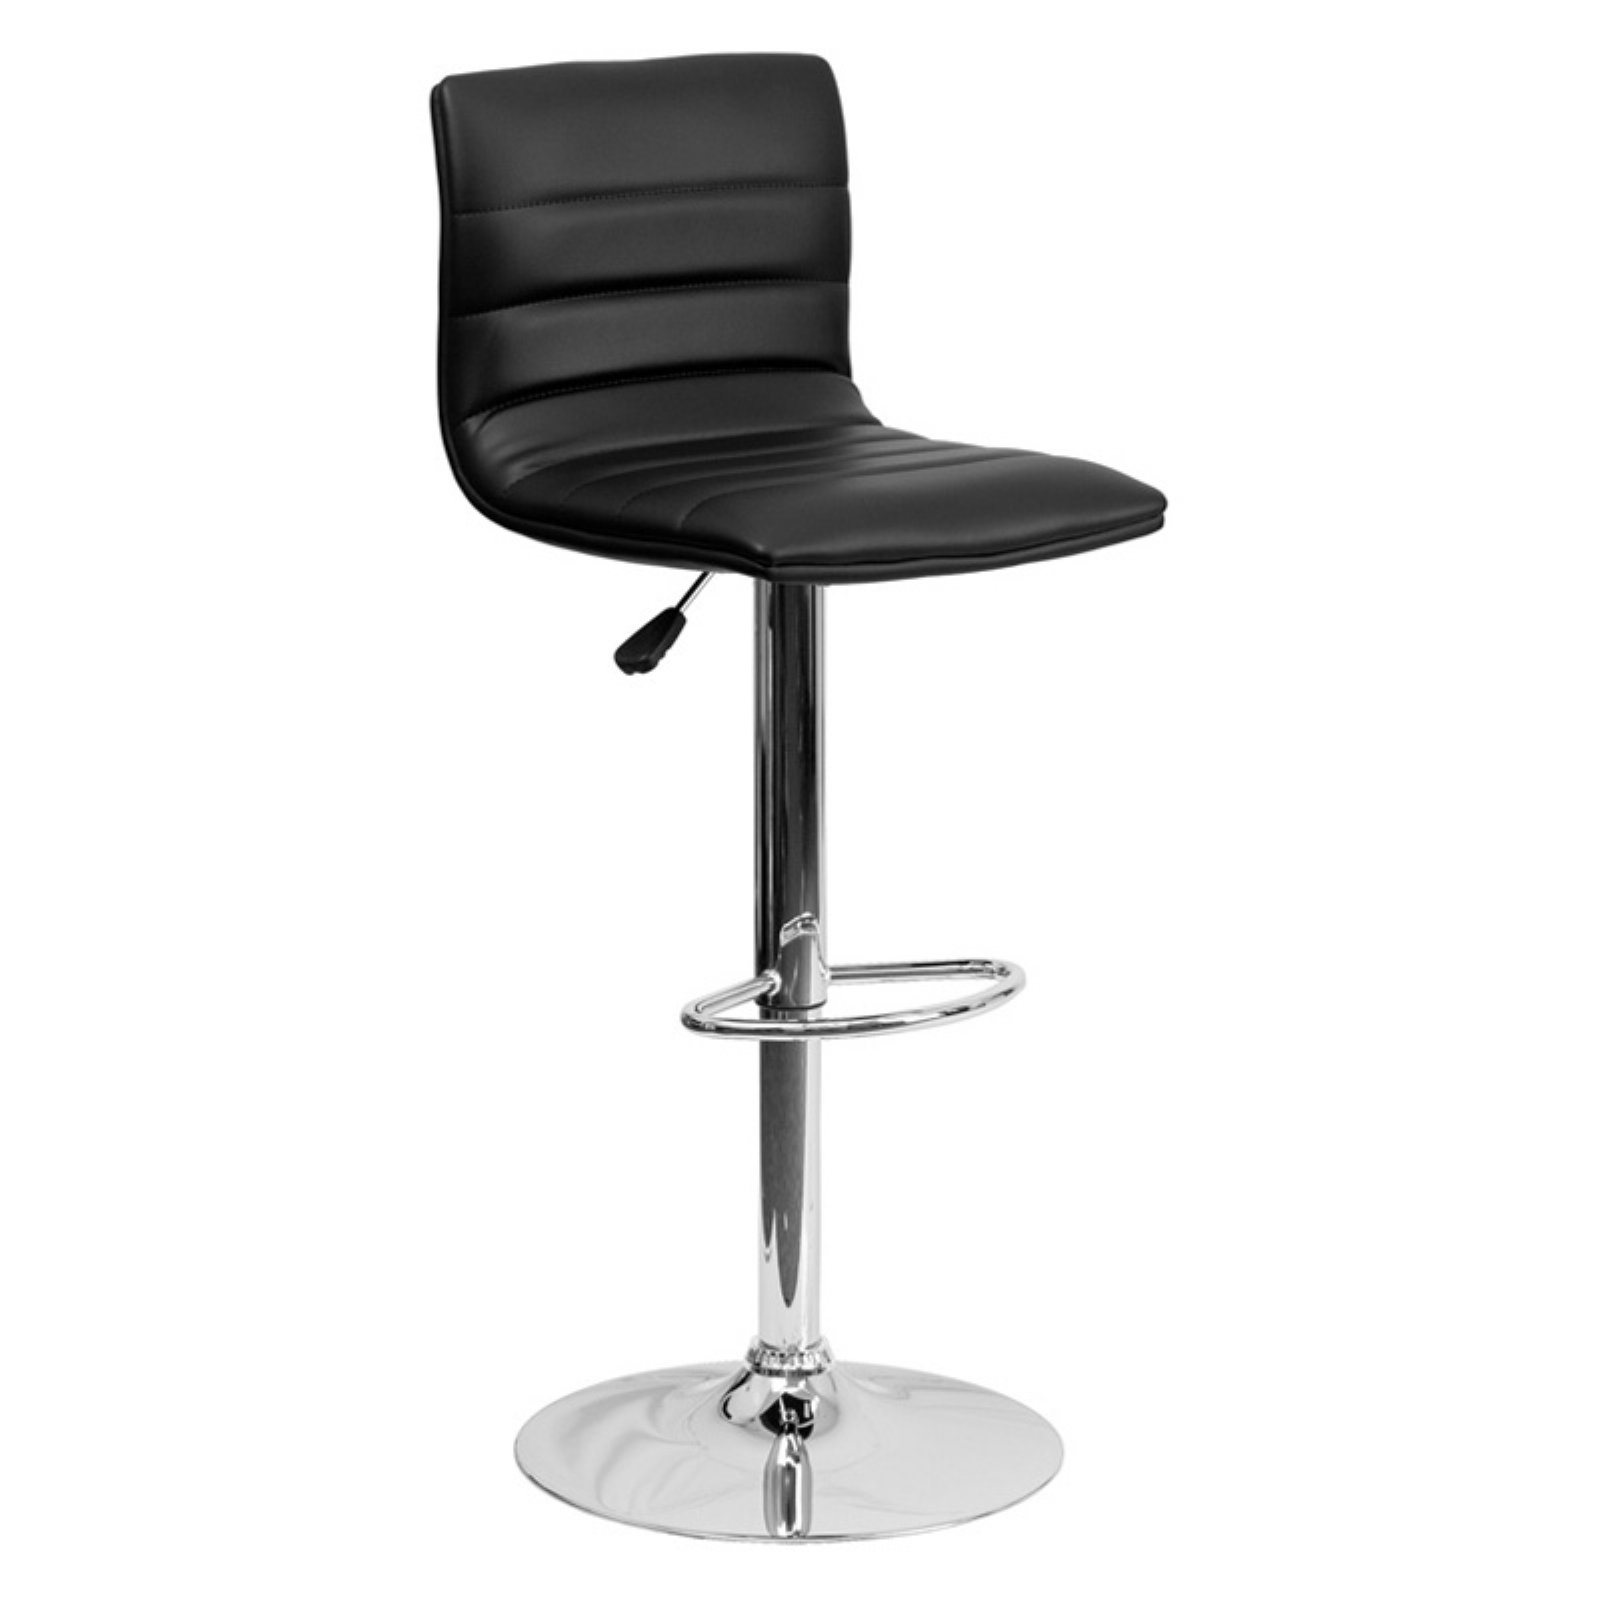 bar stool chairs black stretch chair covers for sale flash furniture contemporary vinyl adjustable height barstool with chrome base multiple colors walmart com